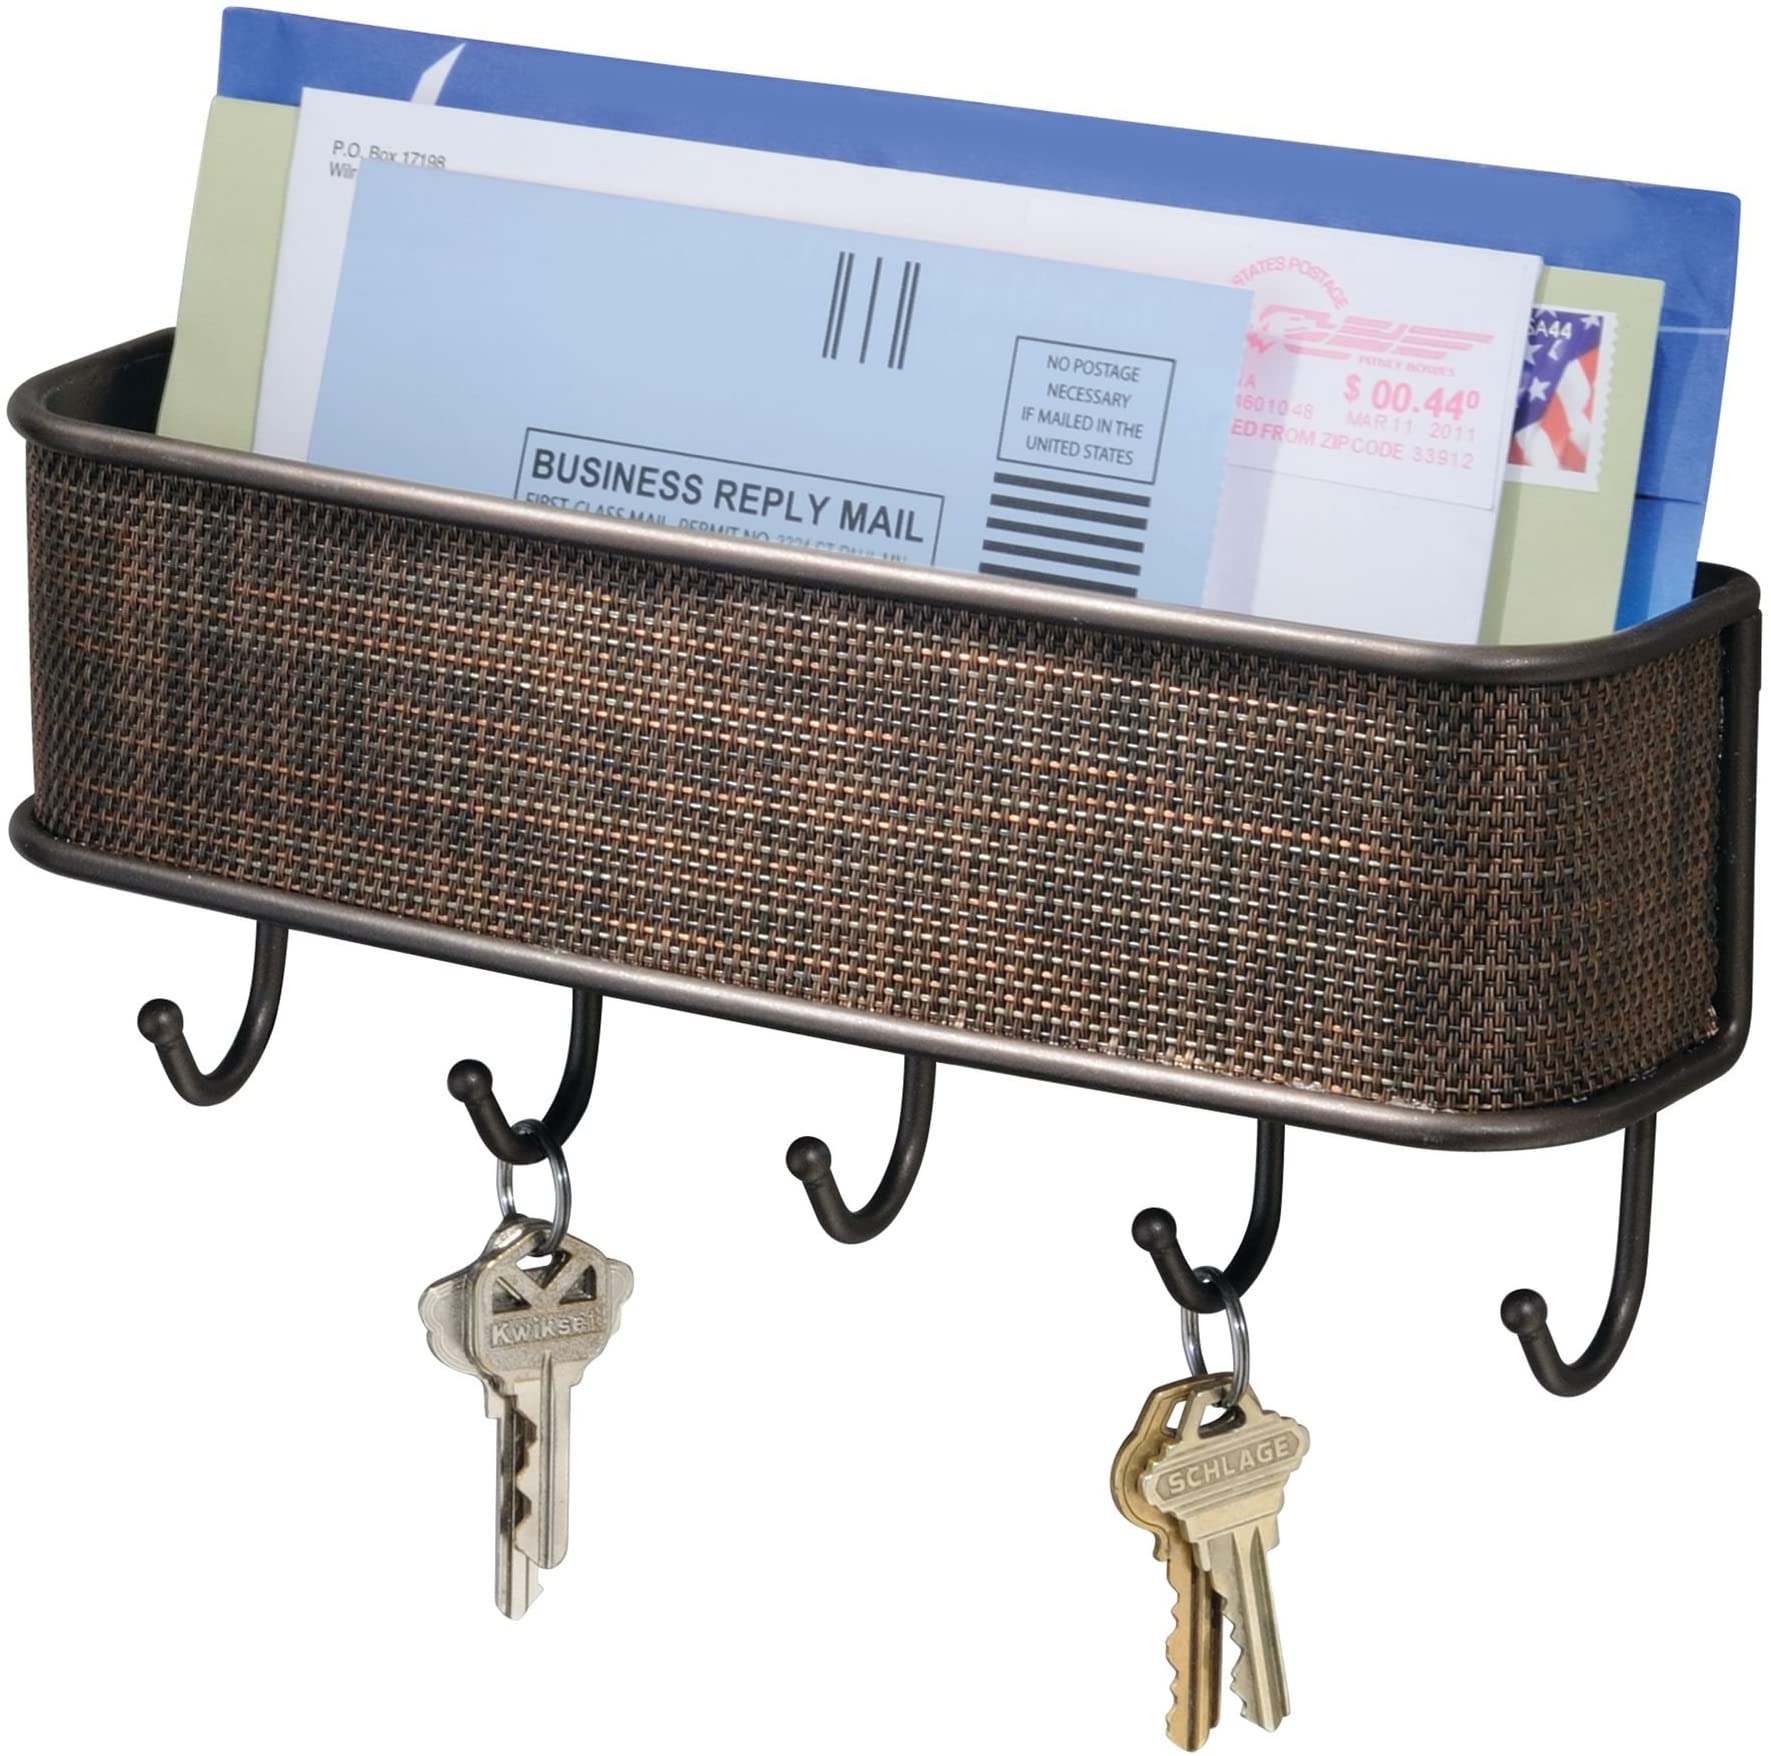 """iDesign Twillo Mail and Key Holder, Decorative Wall Mounted Key Rack Organizer Pocket and Letter Sorter Holder for Entryway, Kitchen, Mudroom, Home Office Organization, 10.5"""" x 2.5"""" x 4.5"""", Bronze"""